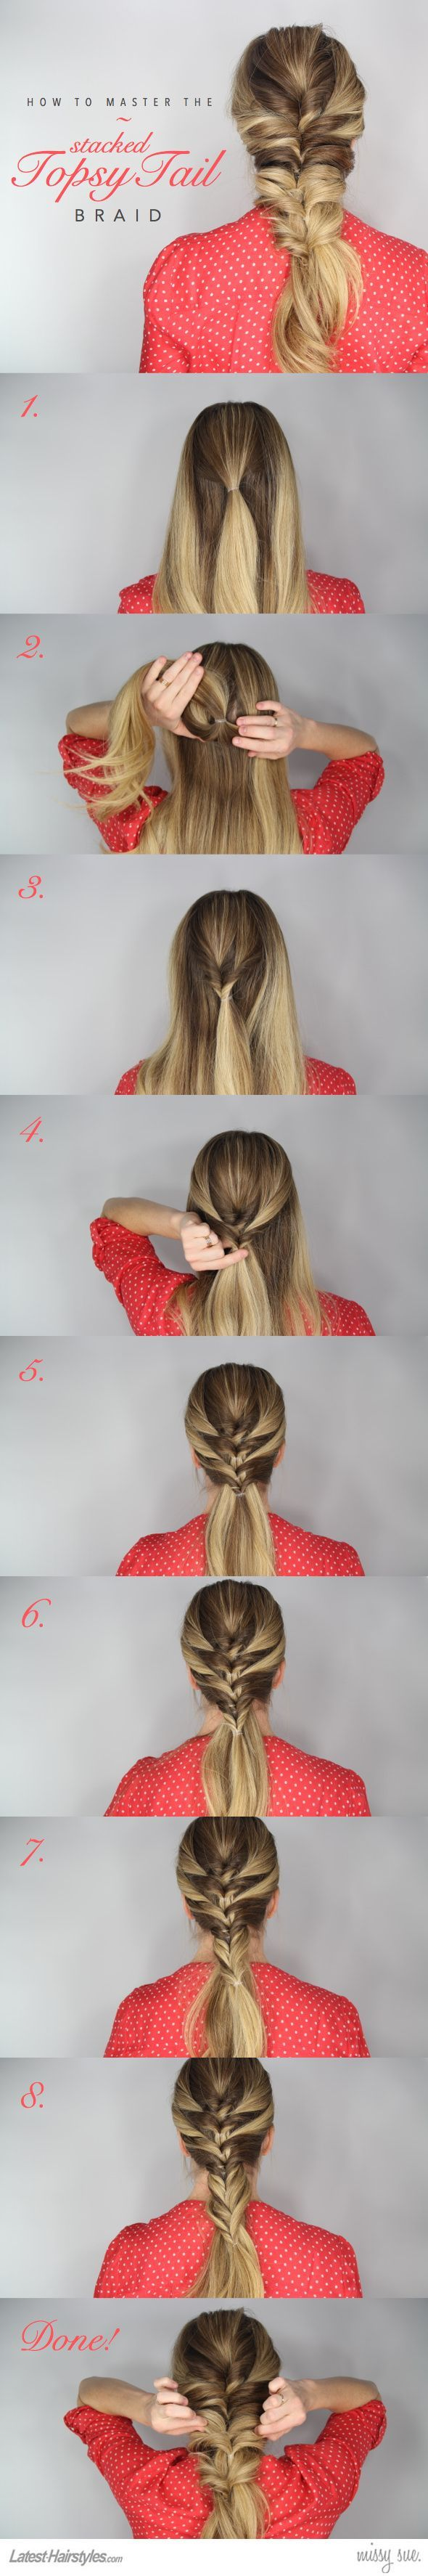 Let's Master This Stacked Topsy Tail Braid Tutorial